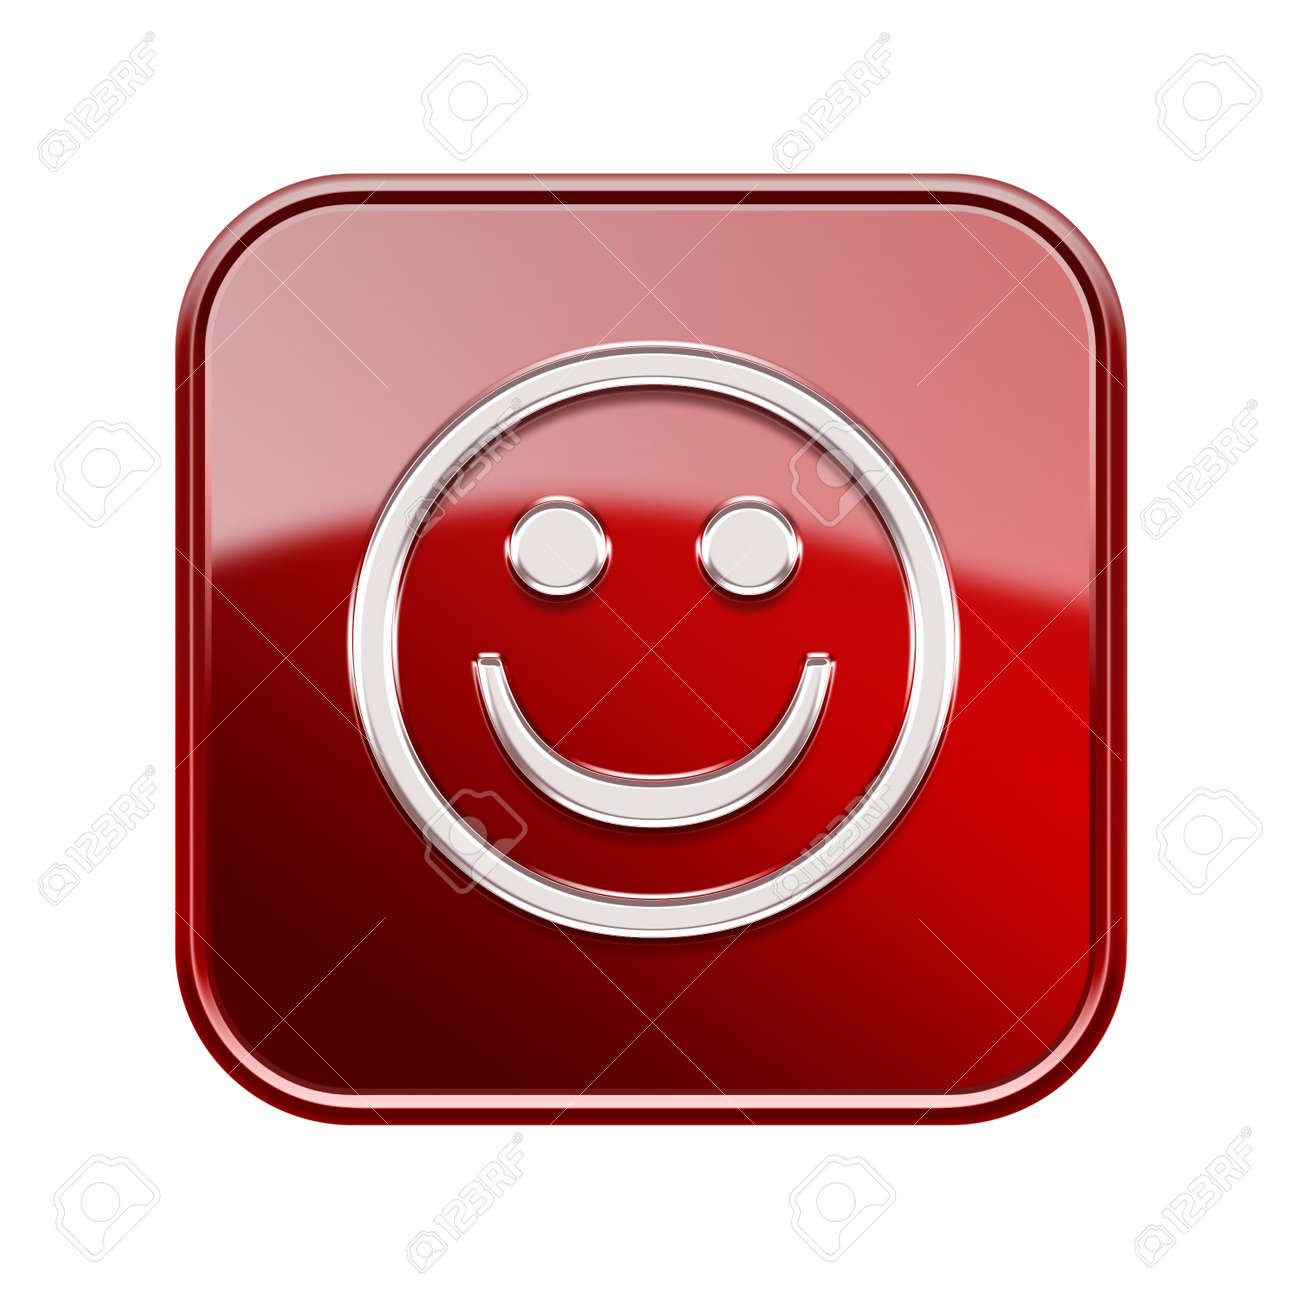 Smiley Face glossy red, isolated on white background Stock Photo - 16828019